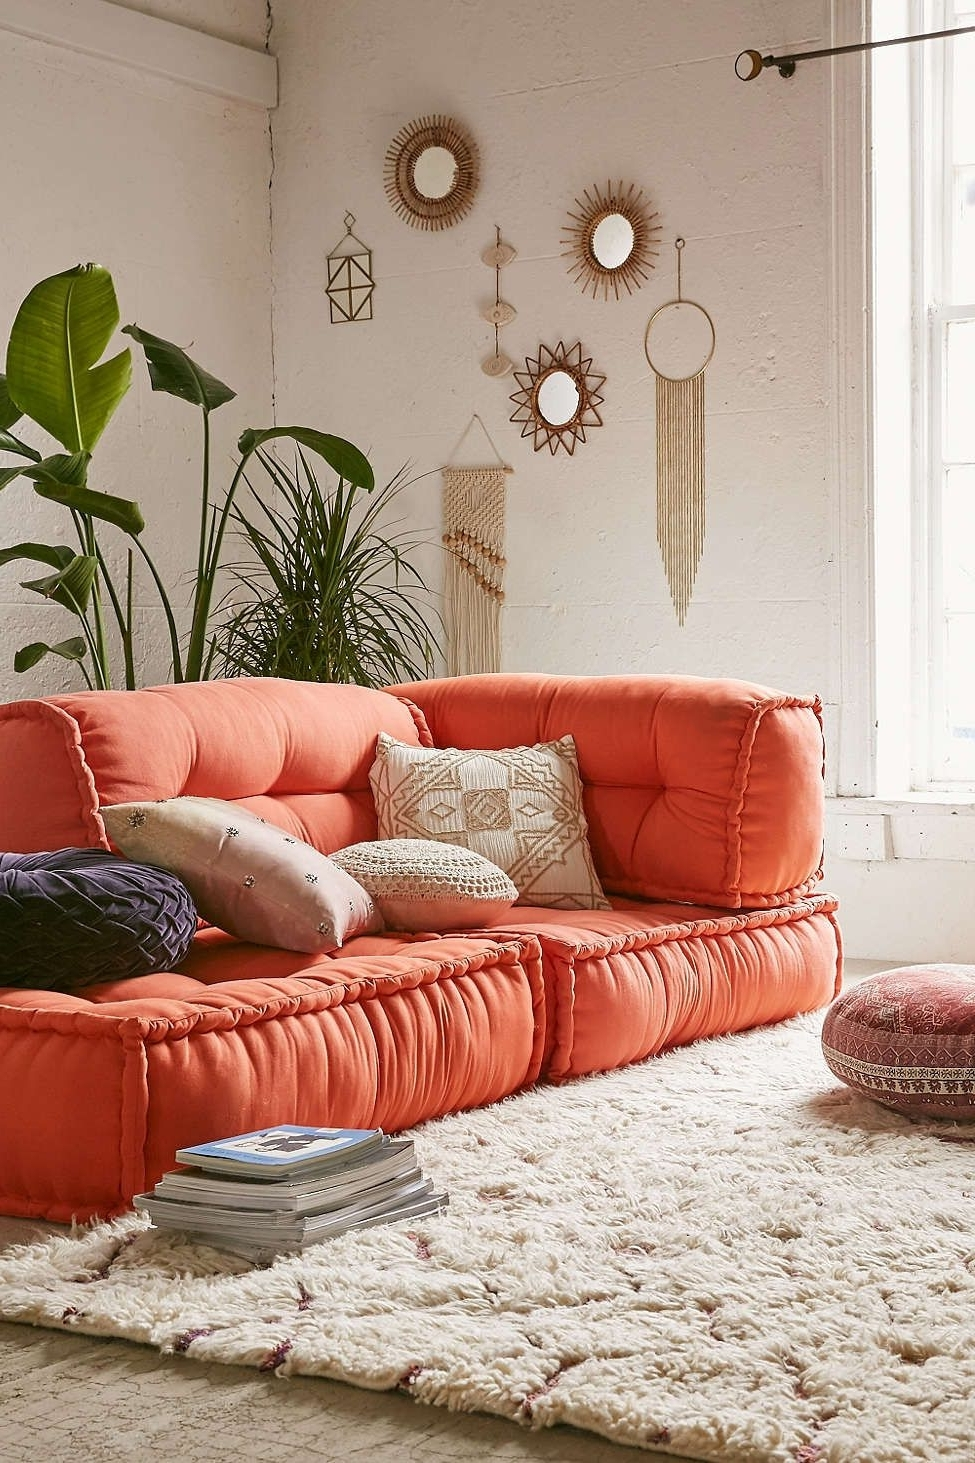 Reema Floor Cushion, Orange Couch And Room For Newest Floor Cushion Sofas (View 2 of 20)